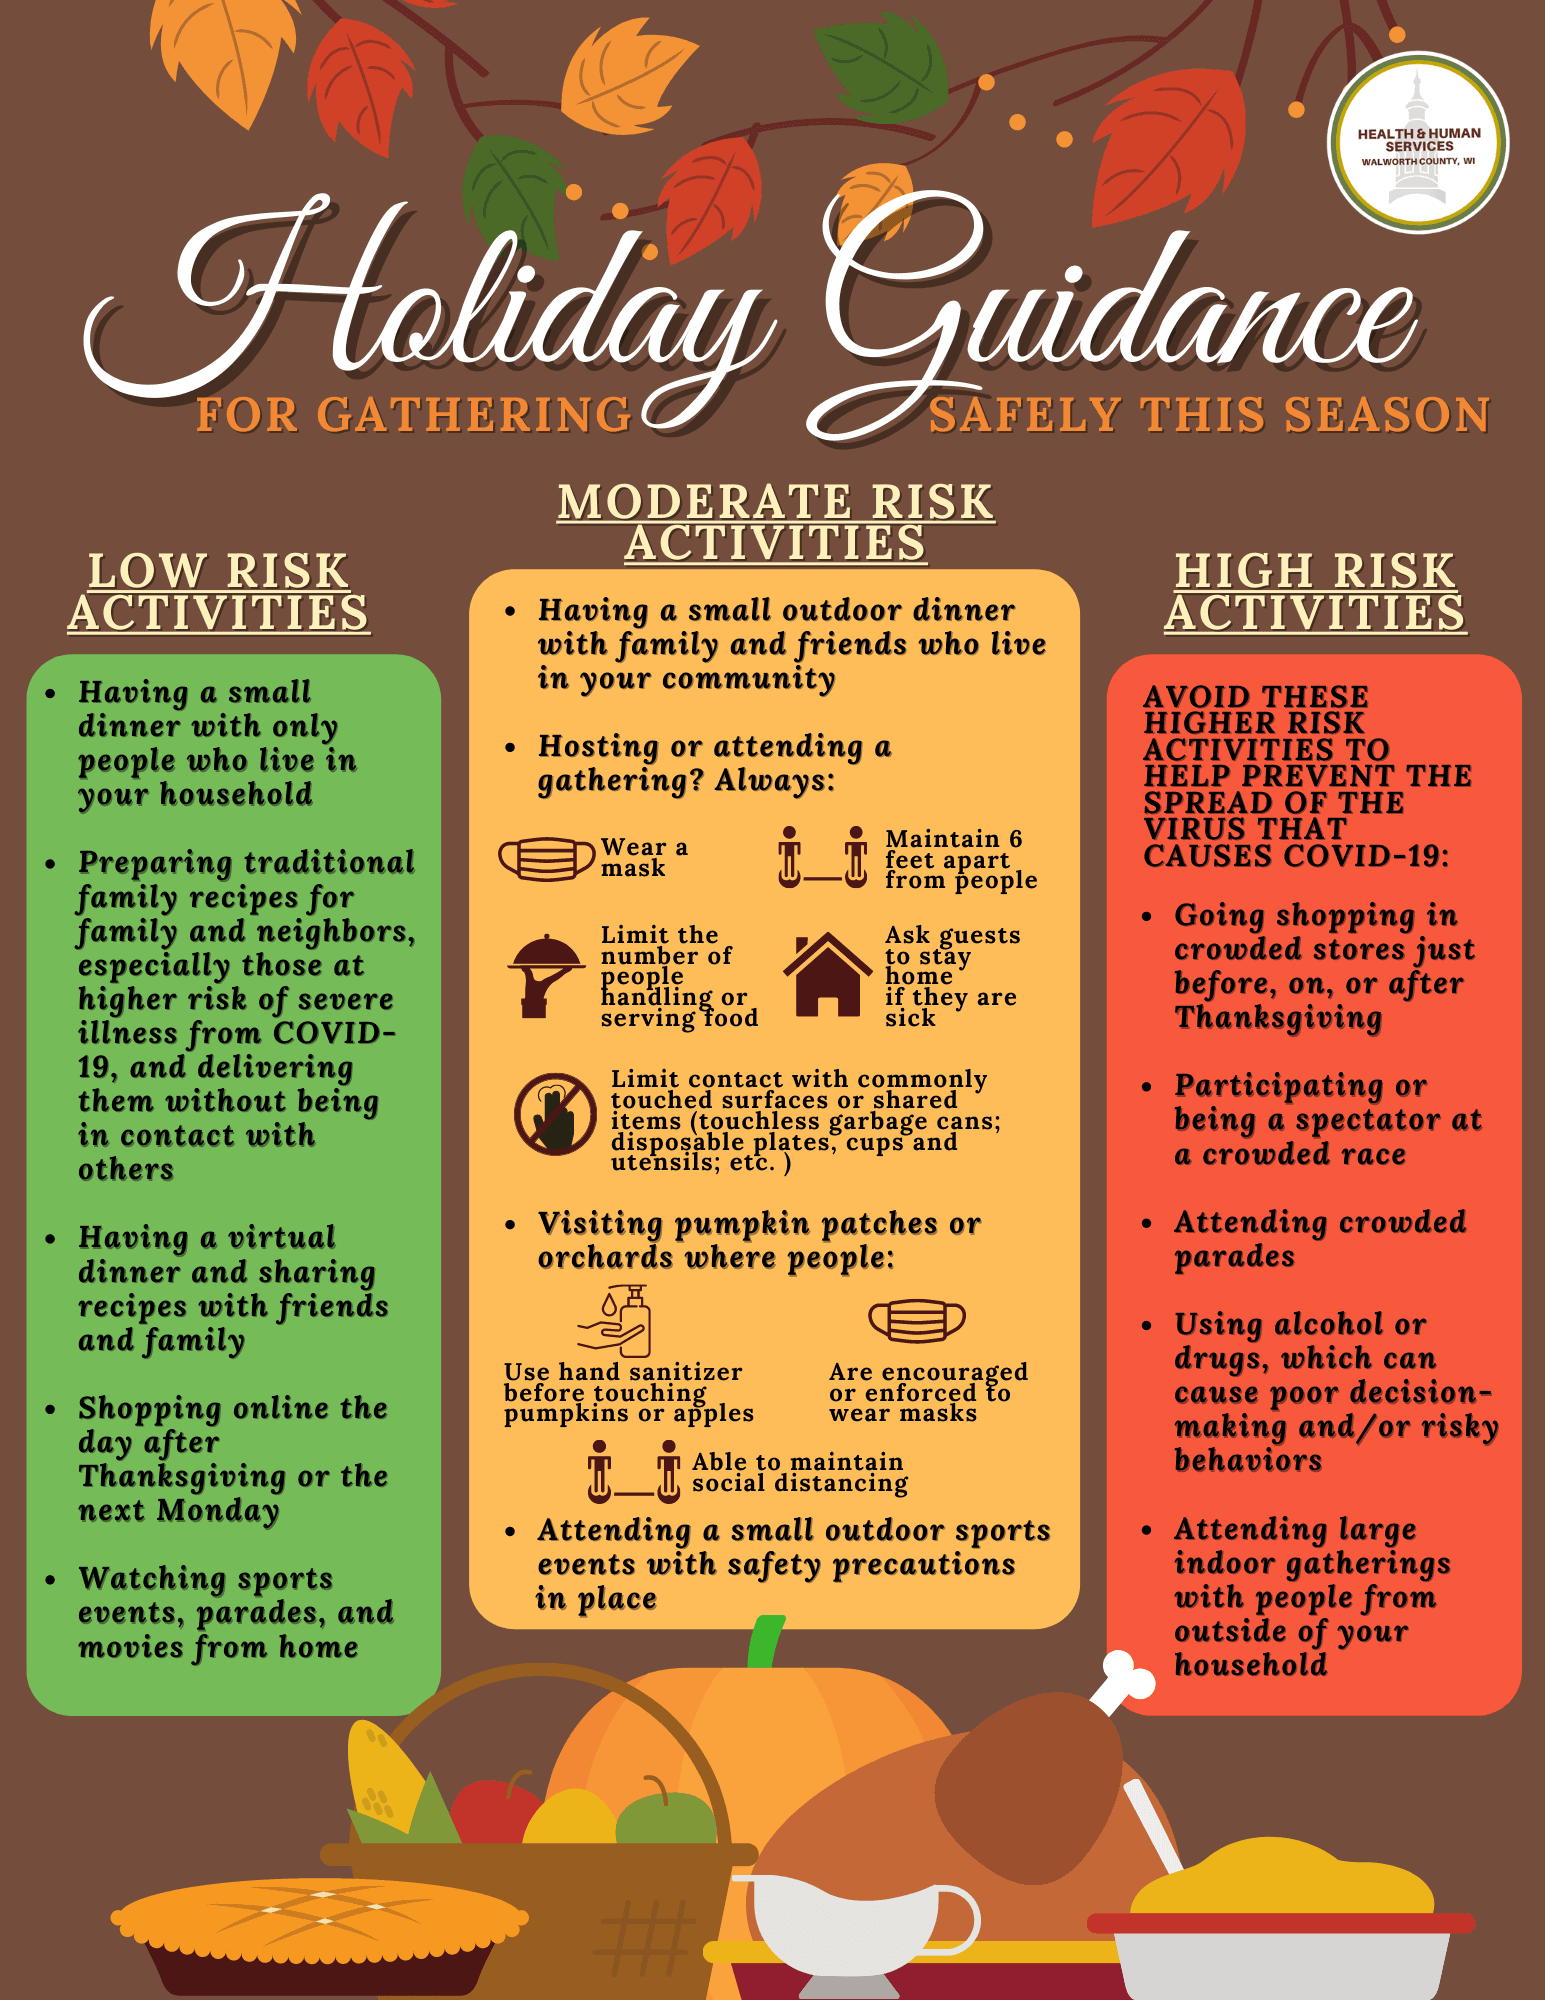 Holiday Guidance - Activity Risk Levels